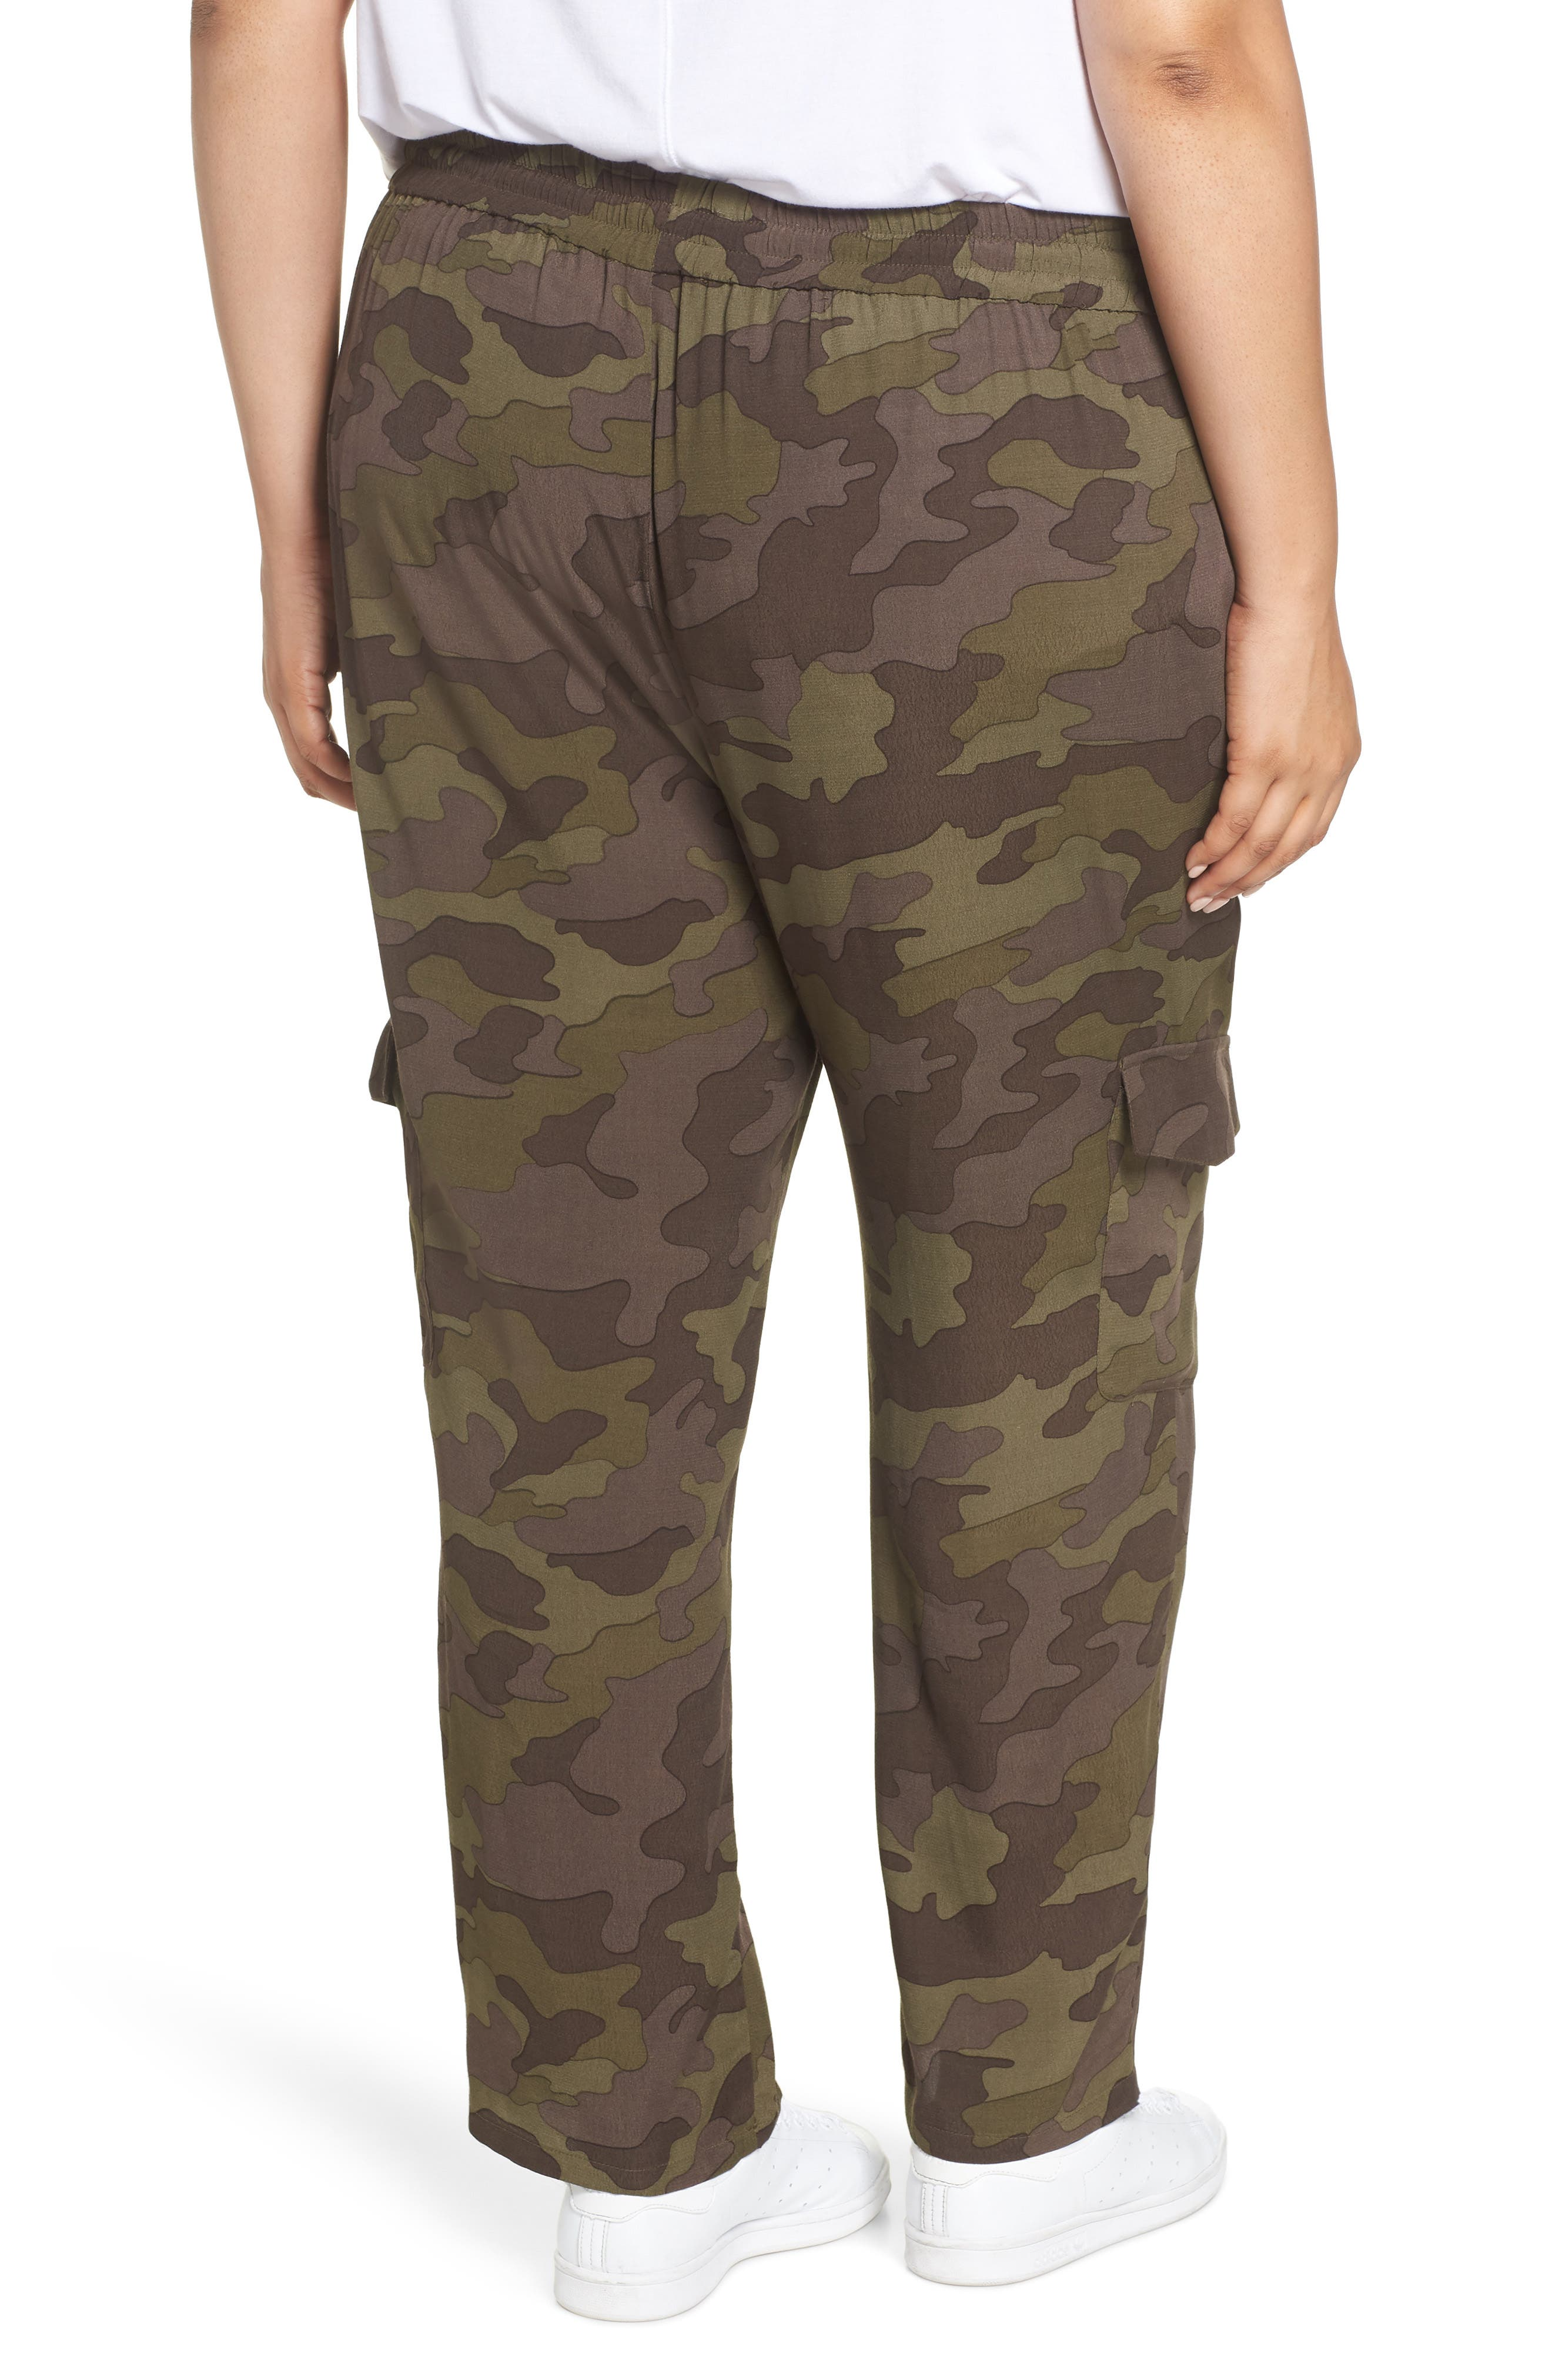 High Rise Camouflage Cargo Pants,                             Alternate thumbnail 9, color,                             210